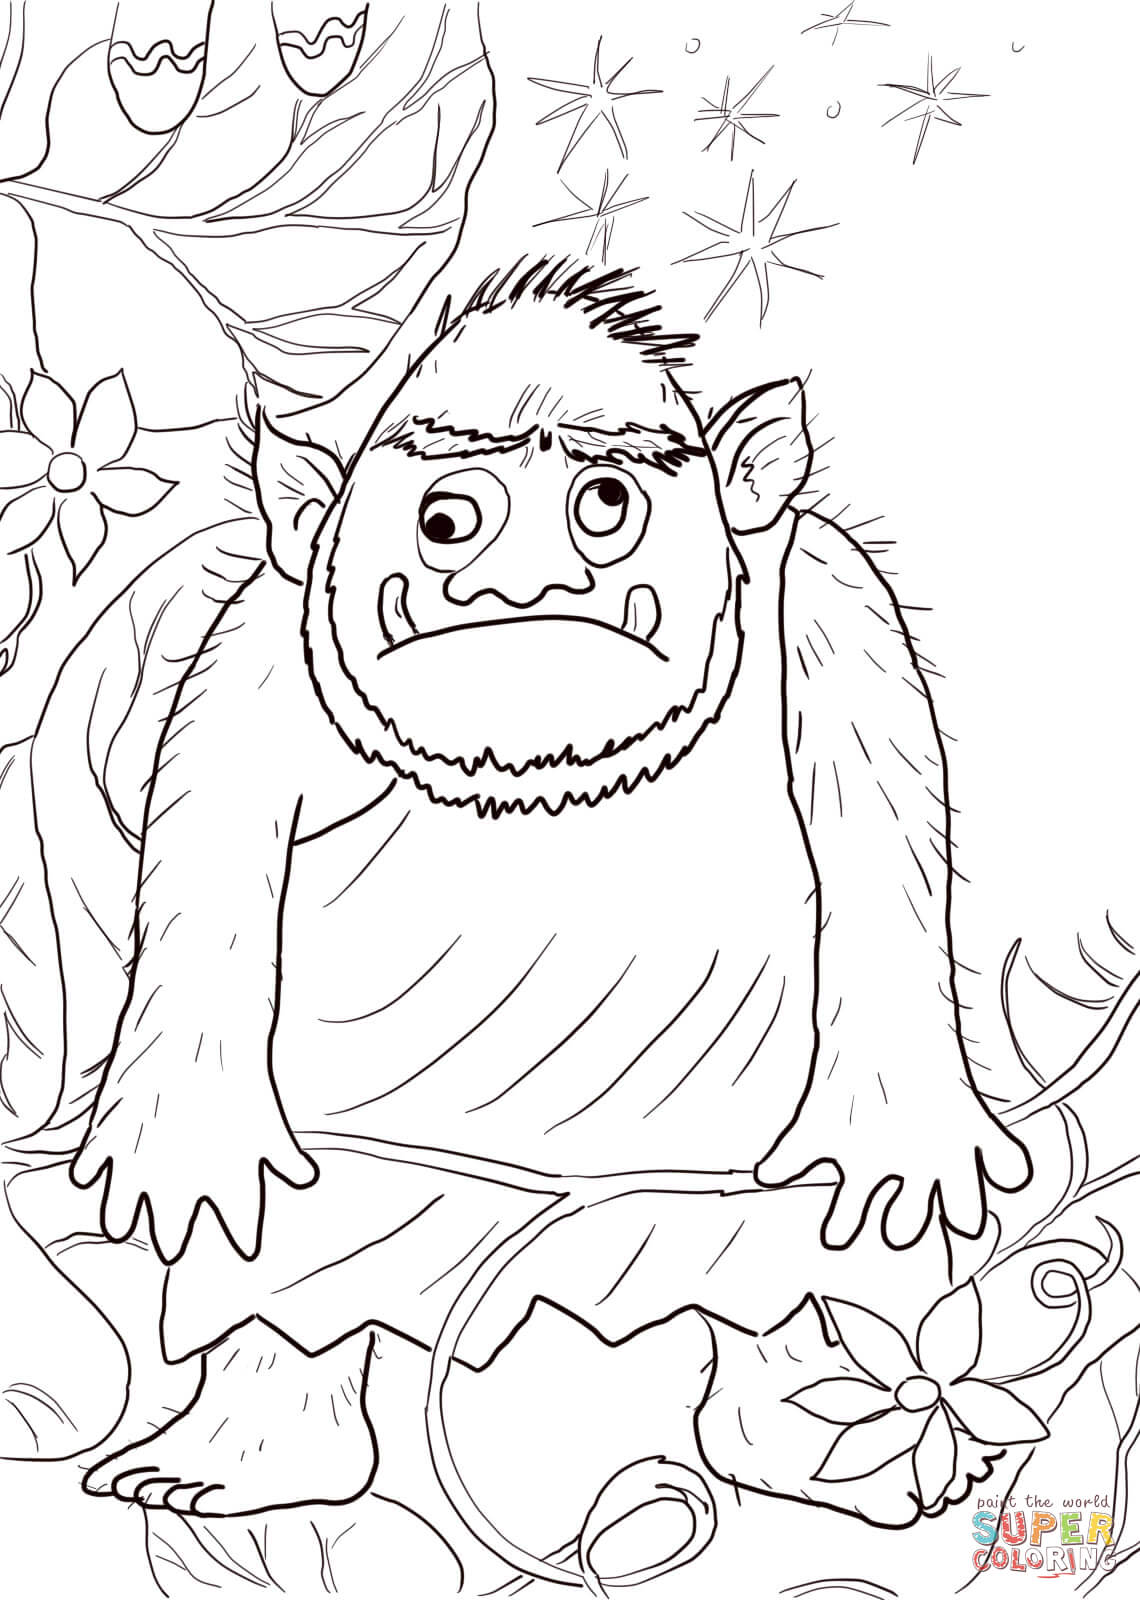 Giant From Jack And The Beanstalk Coloring Page